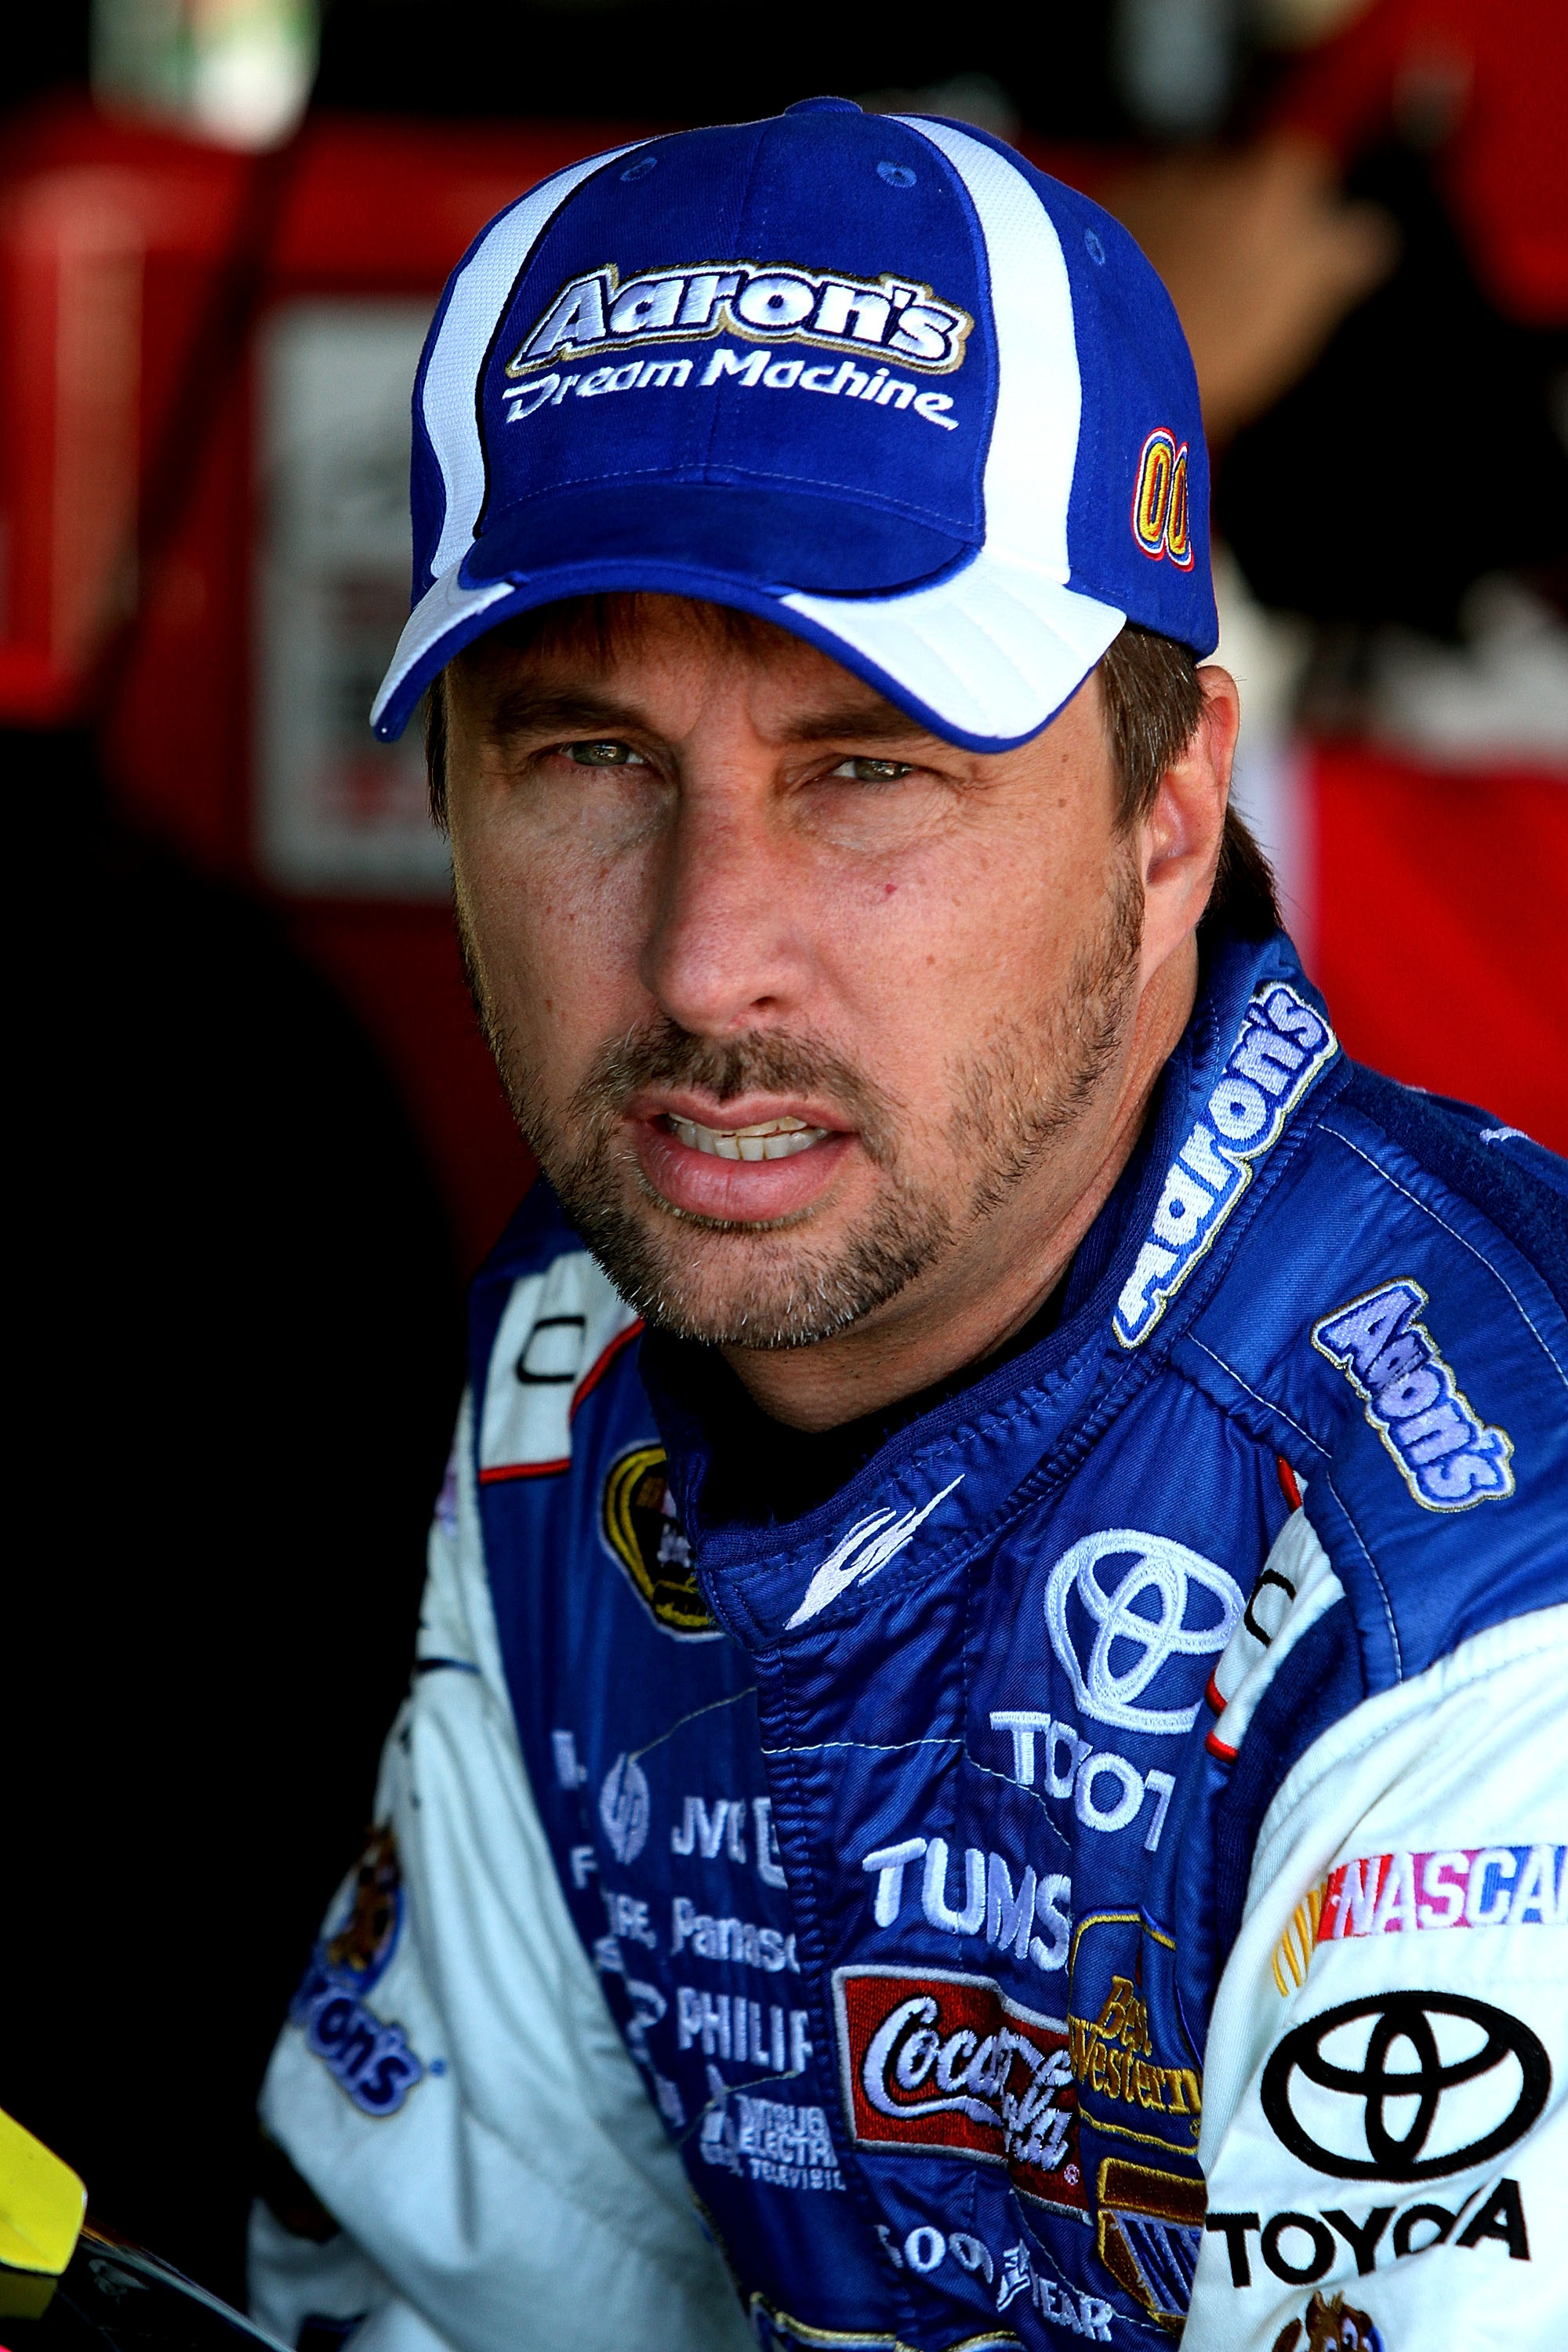 RICHMOND, VA - SEPTEMBER 10: David Reutimann, driver of the #00 Aaron's Dream Machine Toyota, waits in the garage during practice for the NASCAR Sprint Cup Series Air Guard 400 at Richmond International Raceway on September 10, 2010 in Richmond, Virginia.